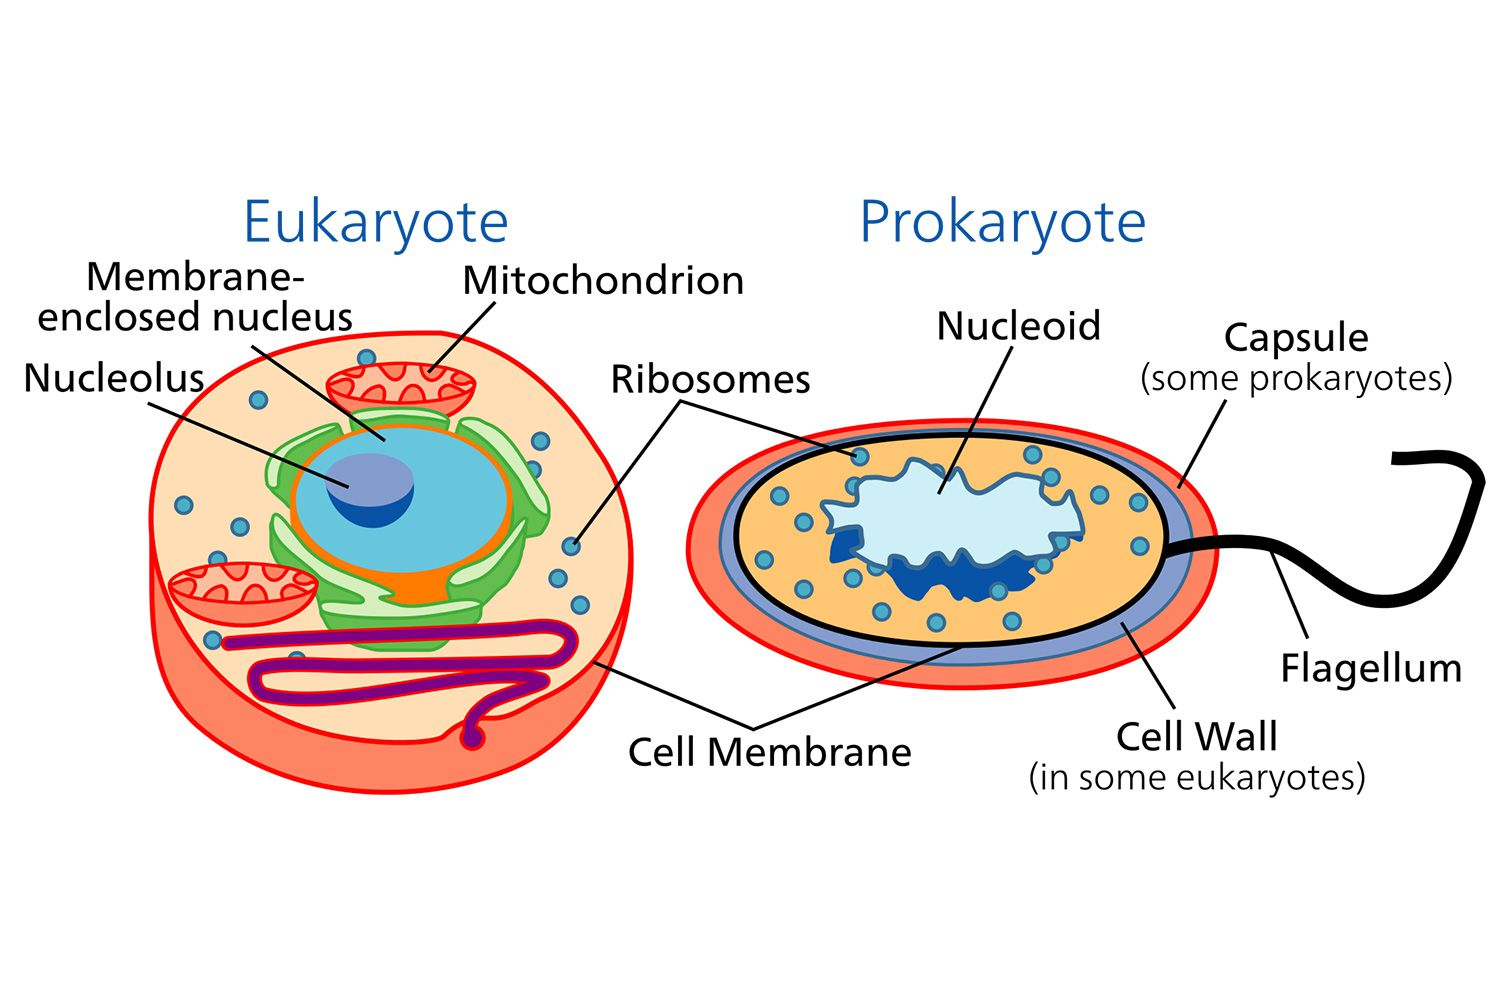 Worksheets Prokaryotic And Eukaryotic Cells Worksheet the cell prokaryotic and eukaryotic cells learn difference between cells